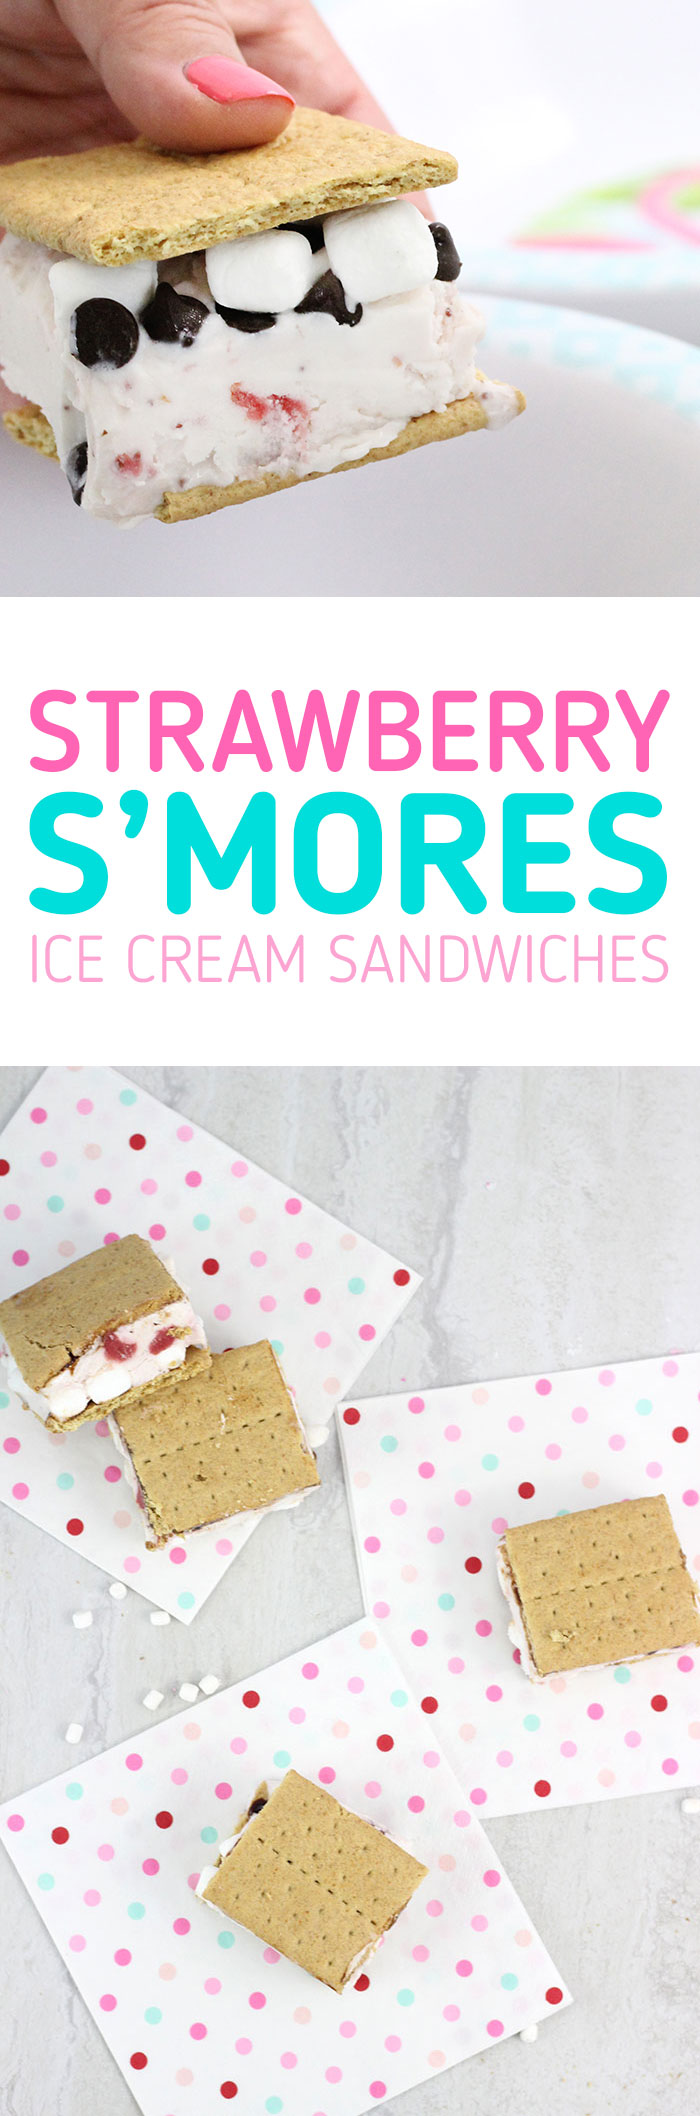 Strawberry S'mores Ice Cream Sandwiches. So easy and yummy. Customize your own ingredients.